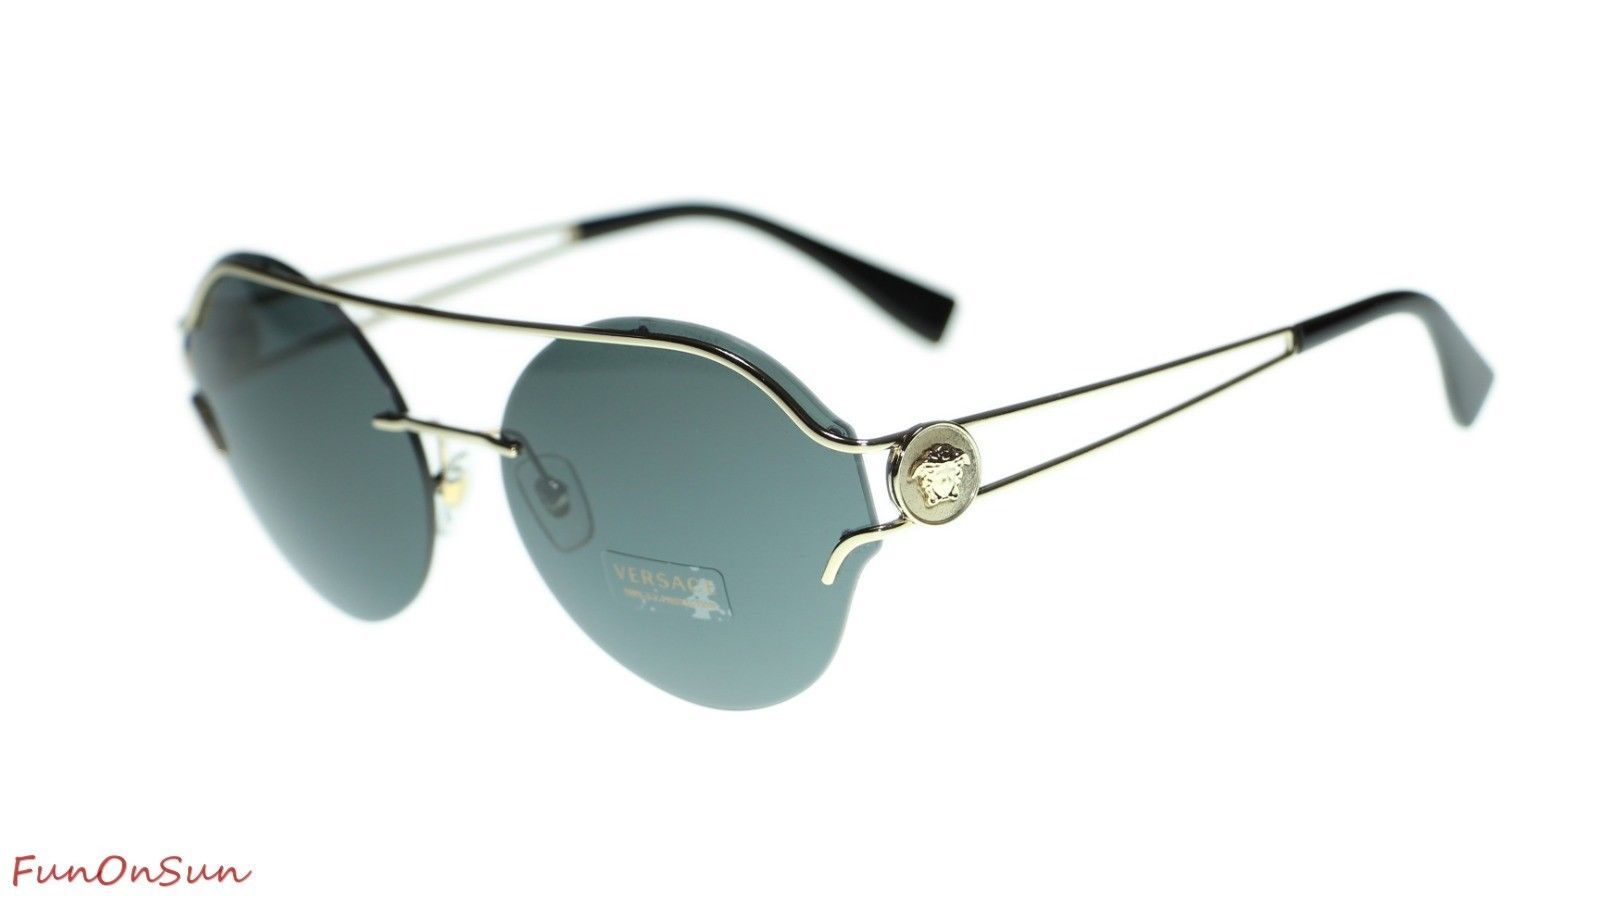 a649c4ebebc4d Versace Round Sunglasses VE2184 125287 Pale and 50 similar items. 10